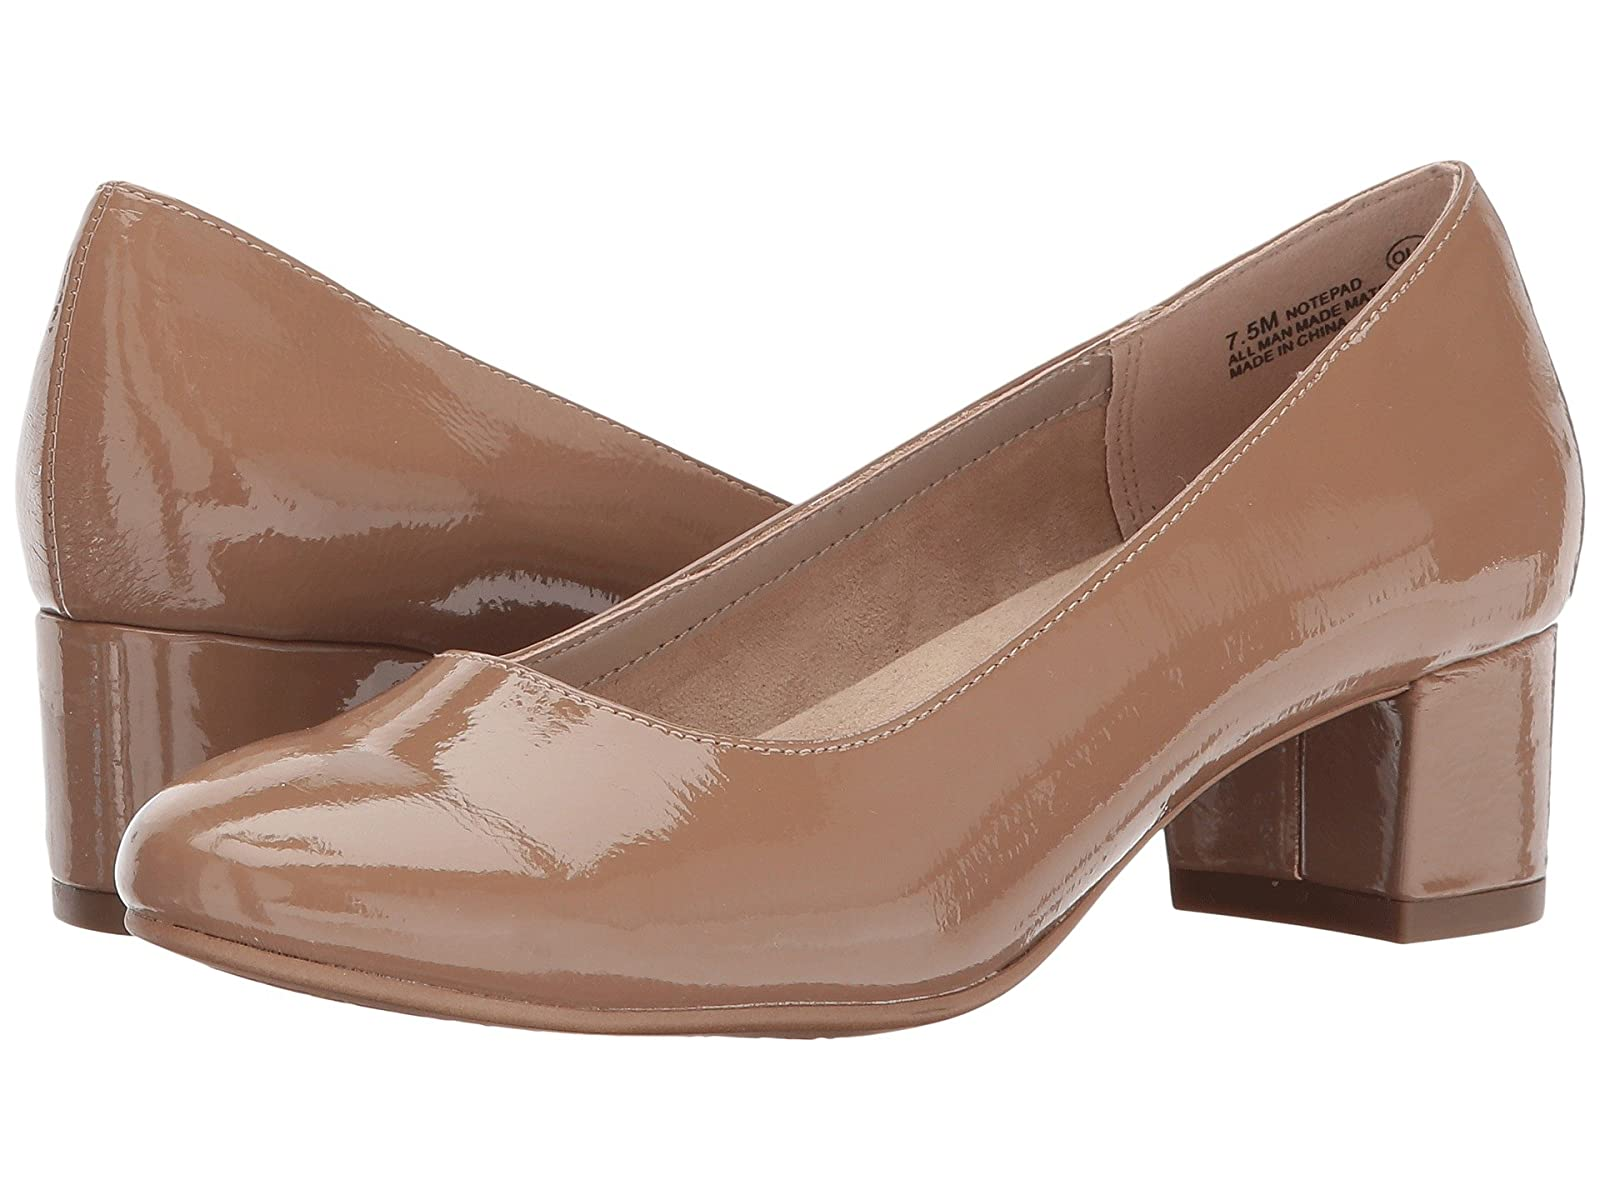 A2 by Aerosoles NotepadAffordable and distinctive shoes